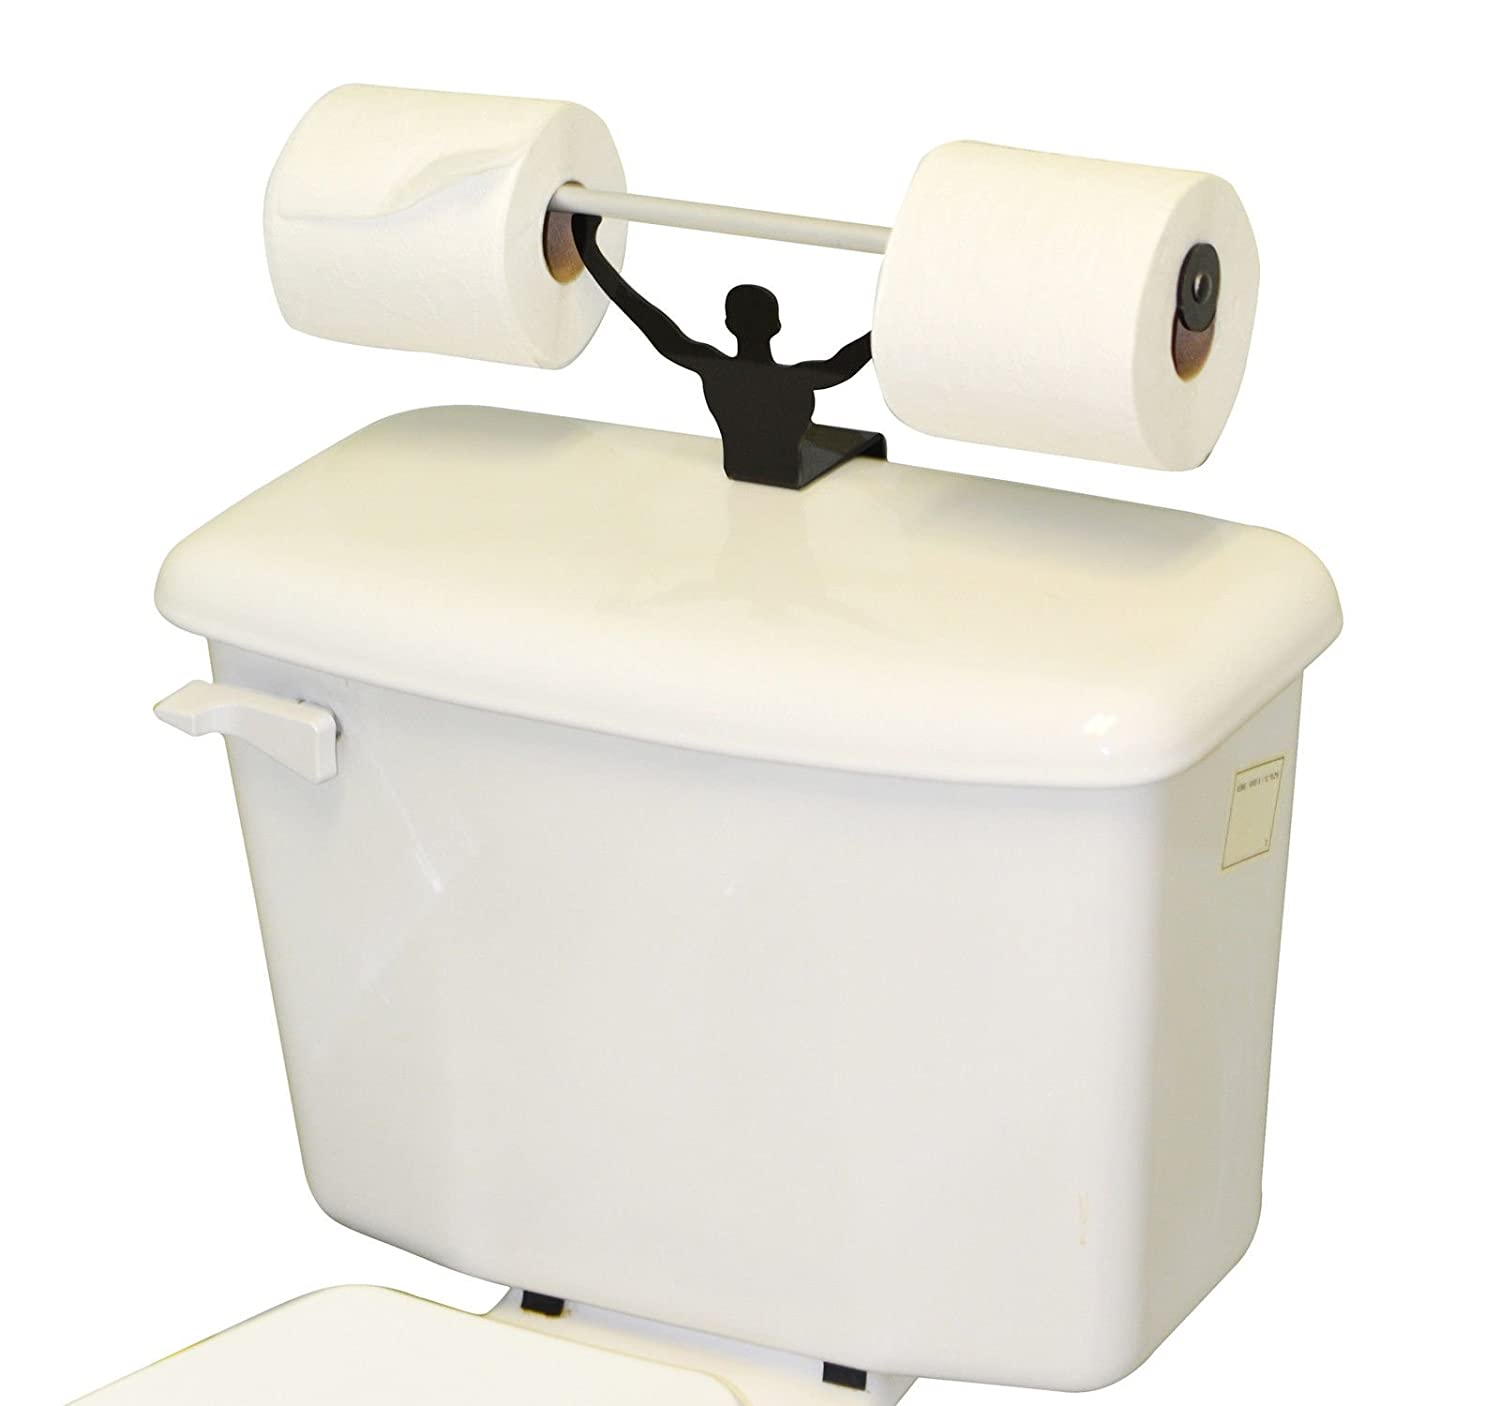 tissue suction bathroom toilet com in for paper banggood the cup holder thing accessories new necessary